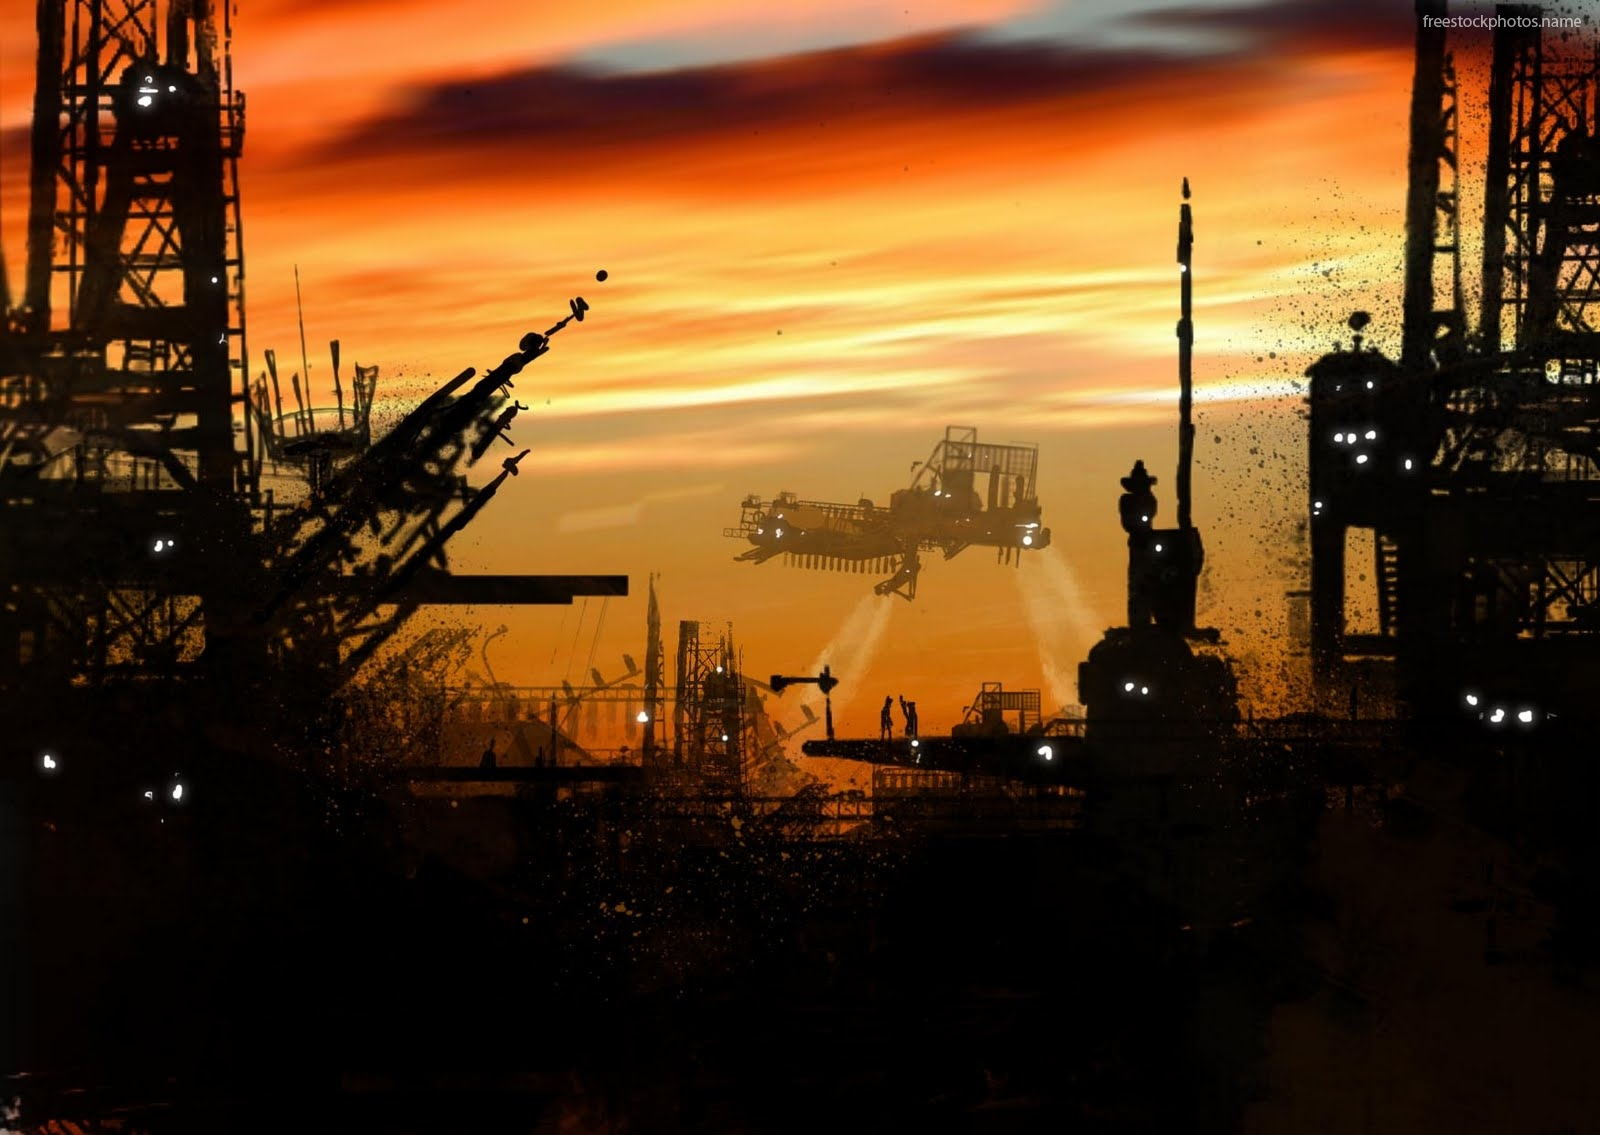 download wallpaper oil and gas gallery